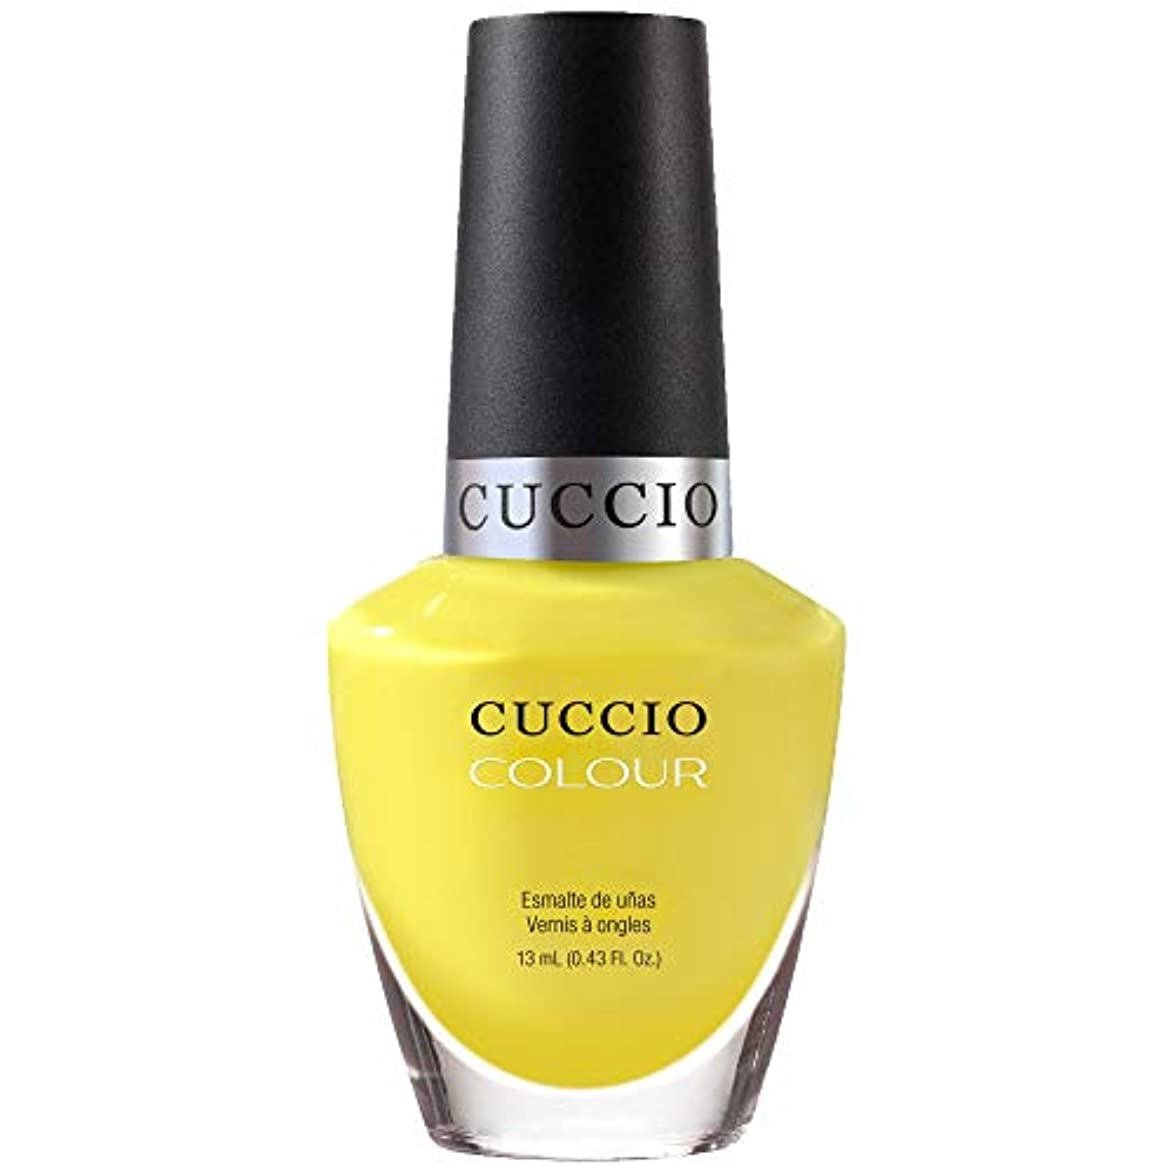 Cuccio Colour Gloss Lacquer - Lemon Drop Me A Line - 0.43oz / 13ml